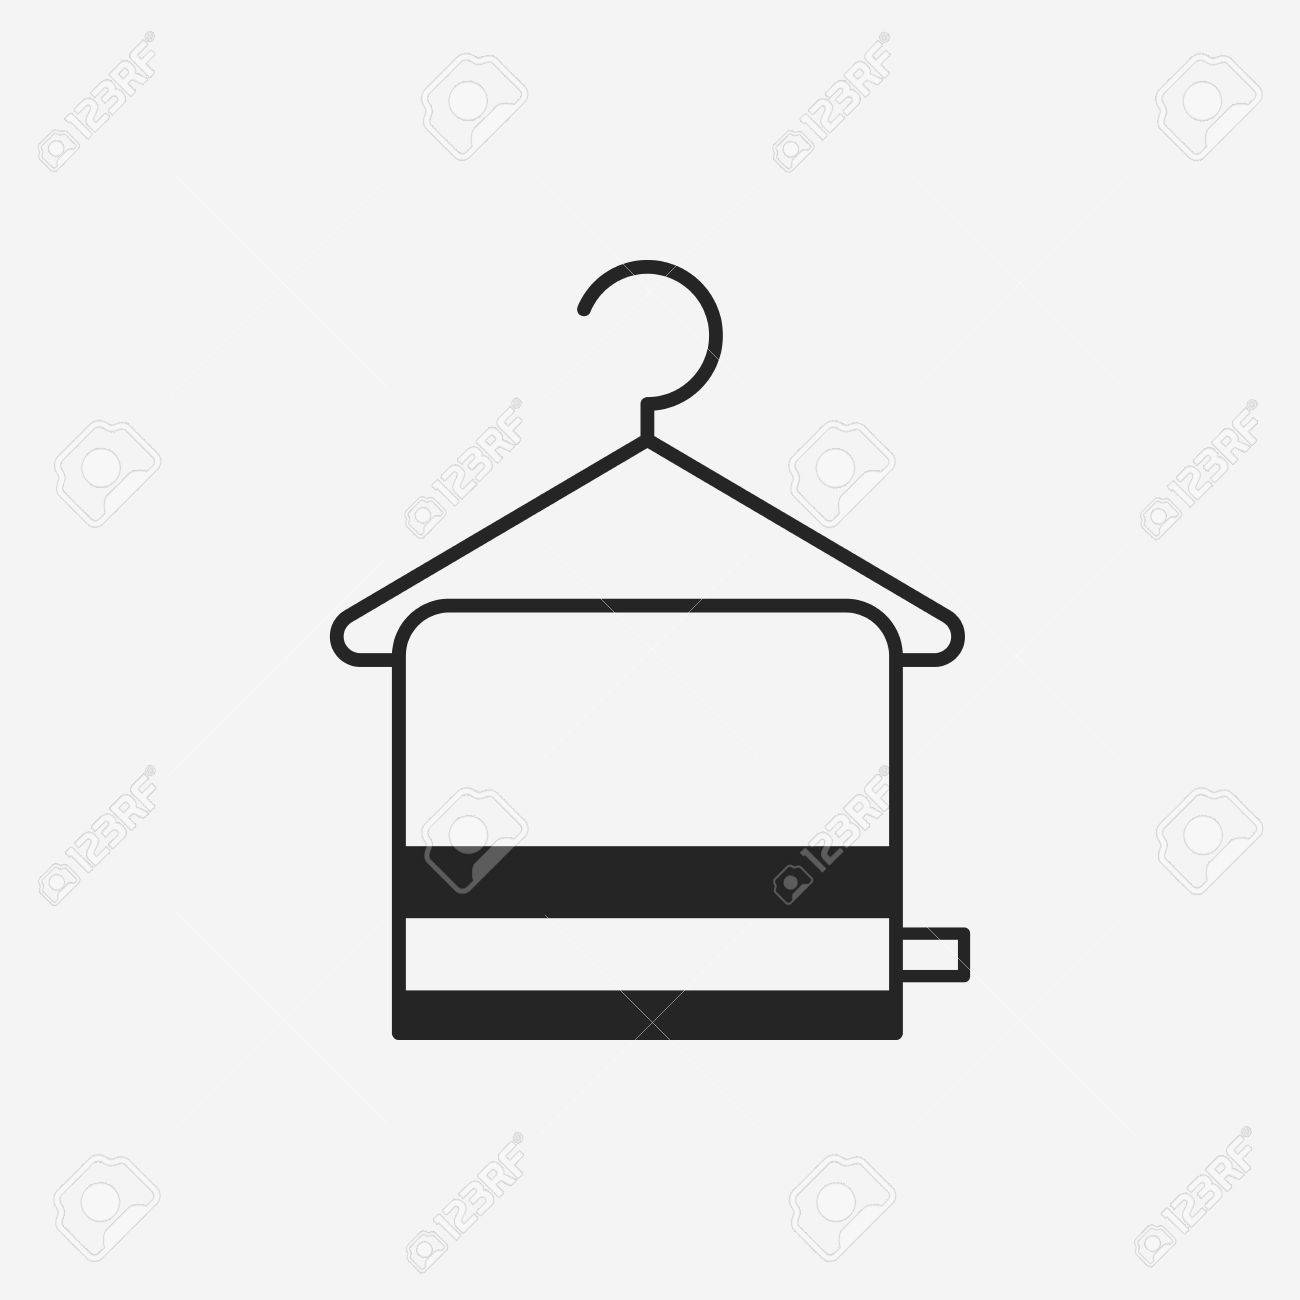 Towel Hanger Towel Hanger Icon Royalty Free Cliparts Vectors And Stock